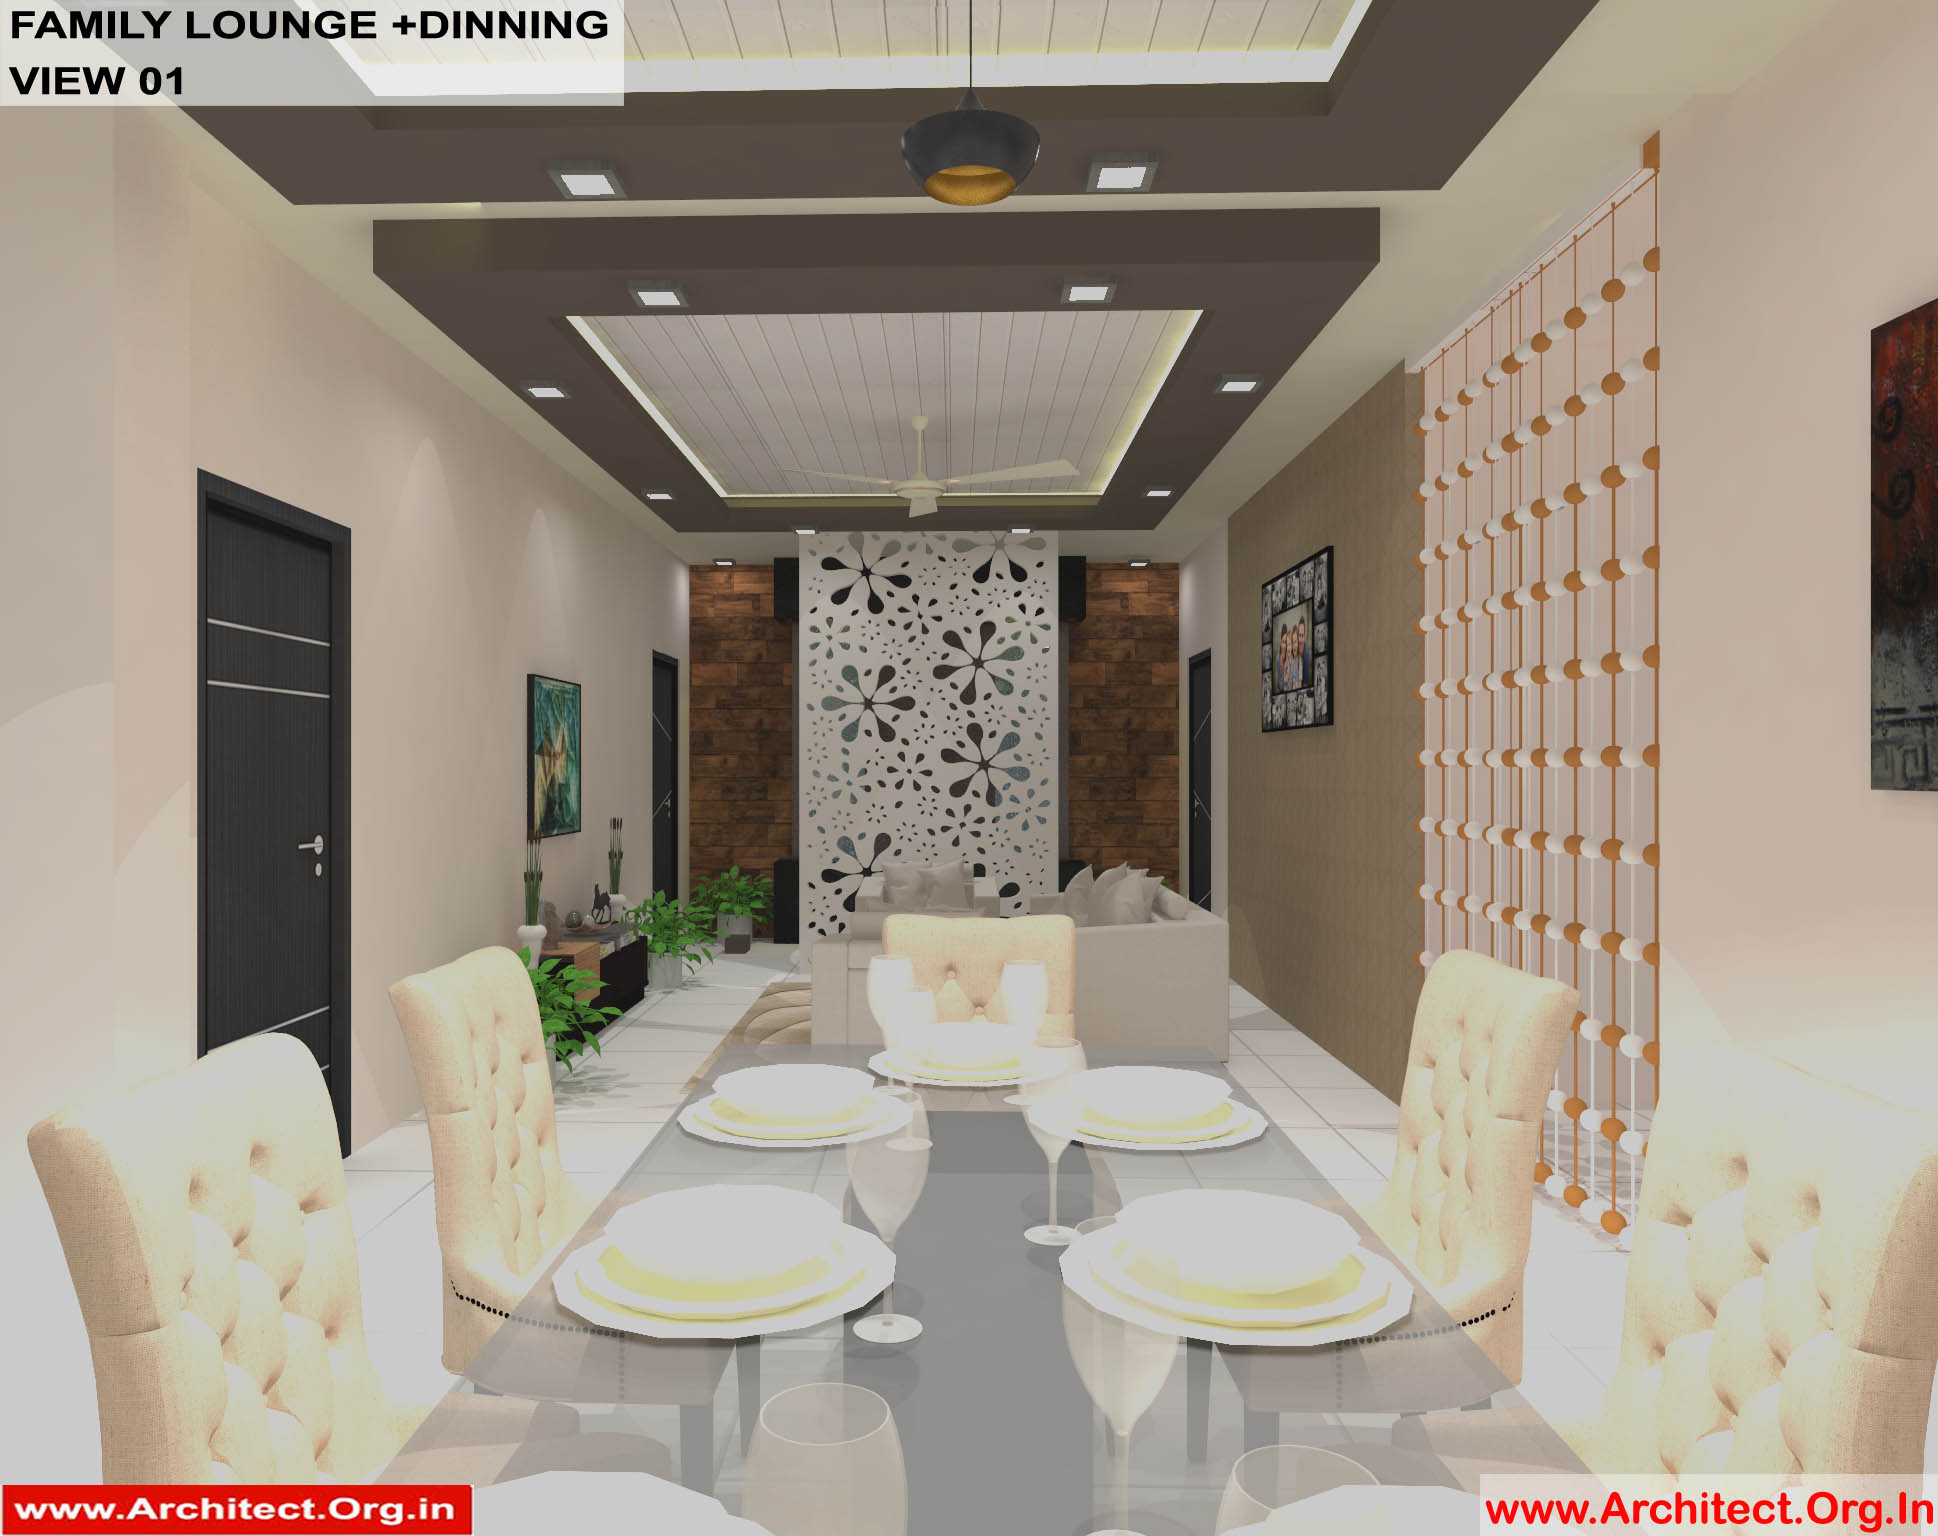 Dr Sandeep Ada Nayudupet Andhra Pradesh House Interior Family Lounge Dinning View 01 Architect Org In